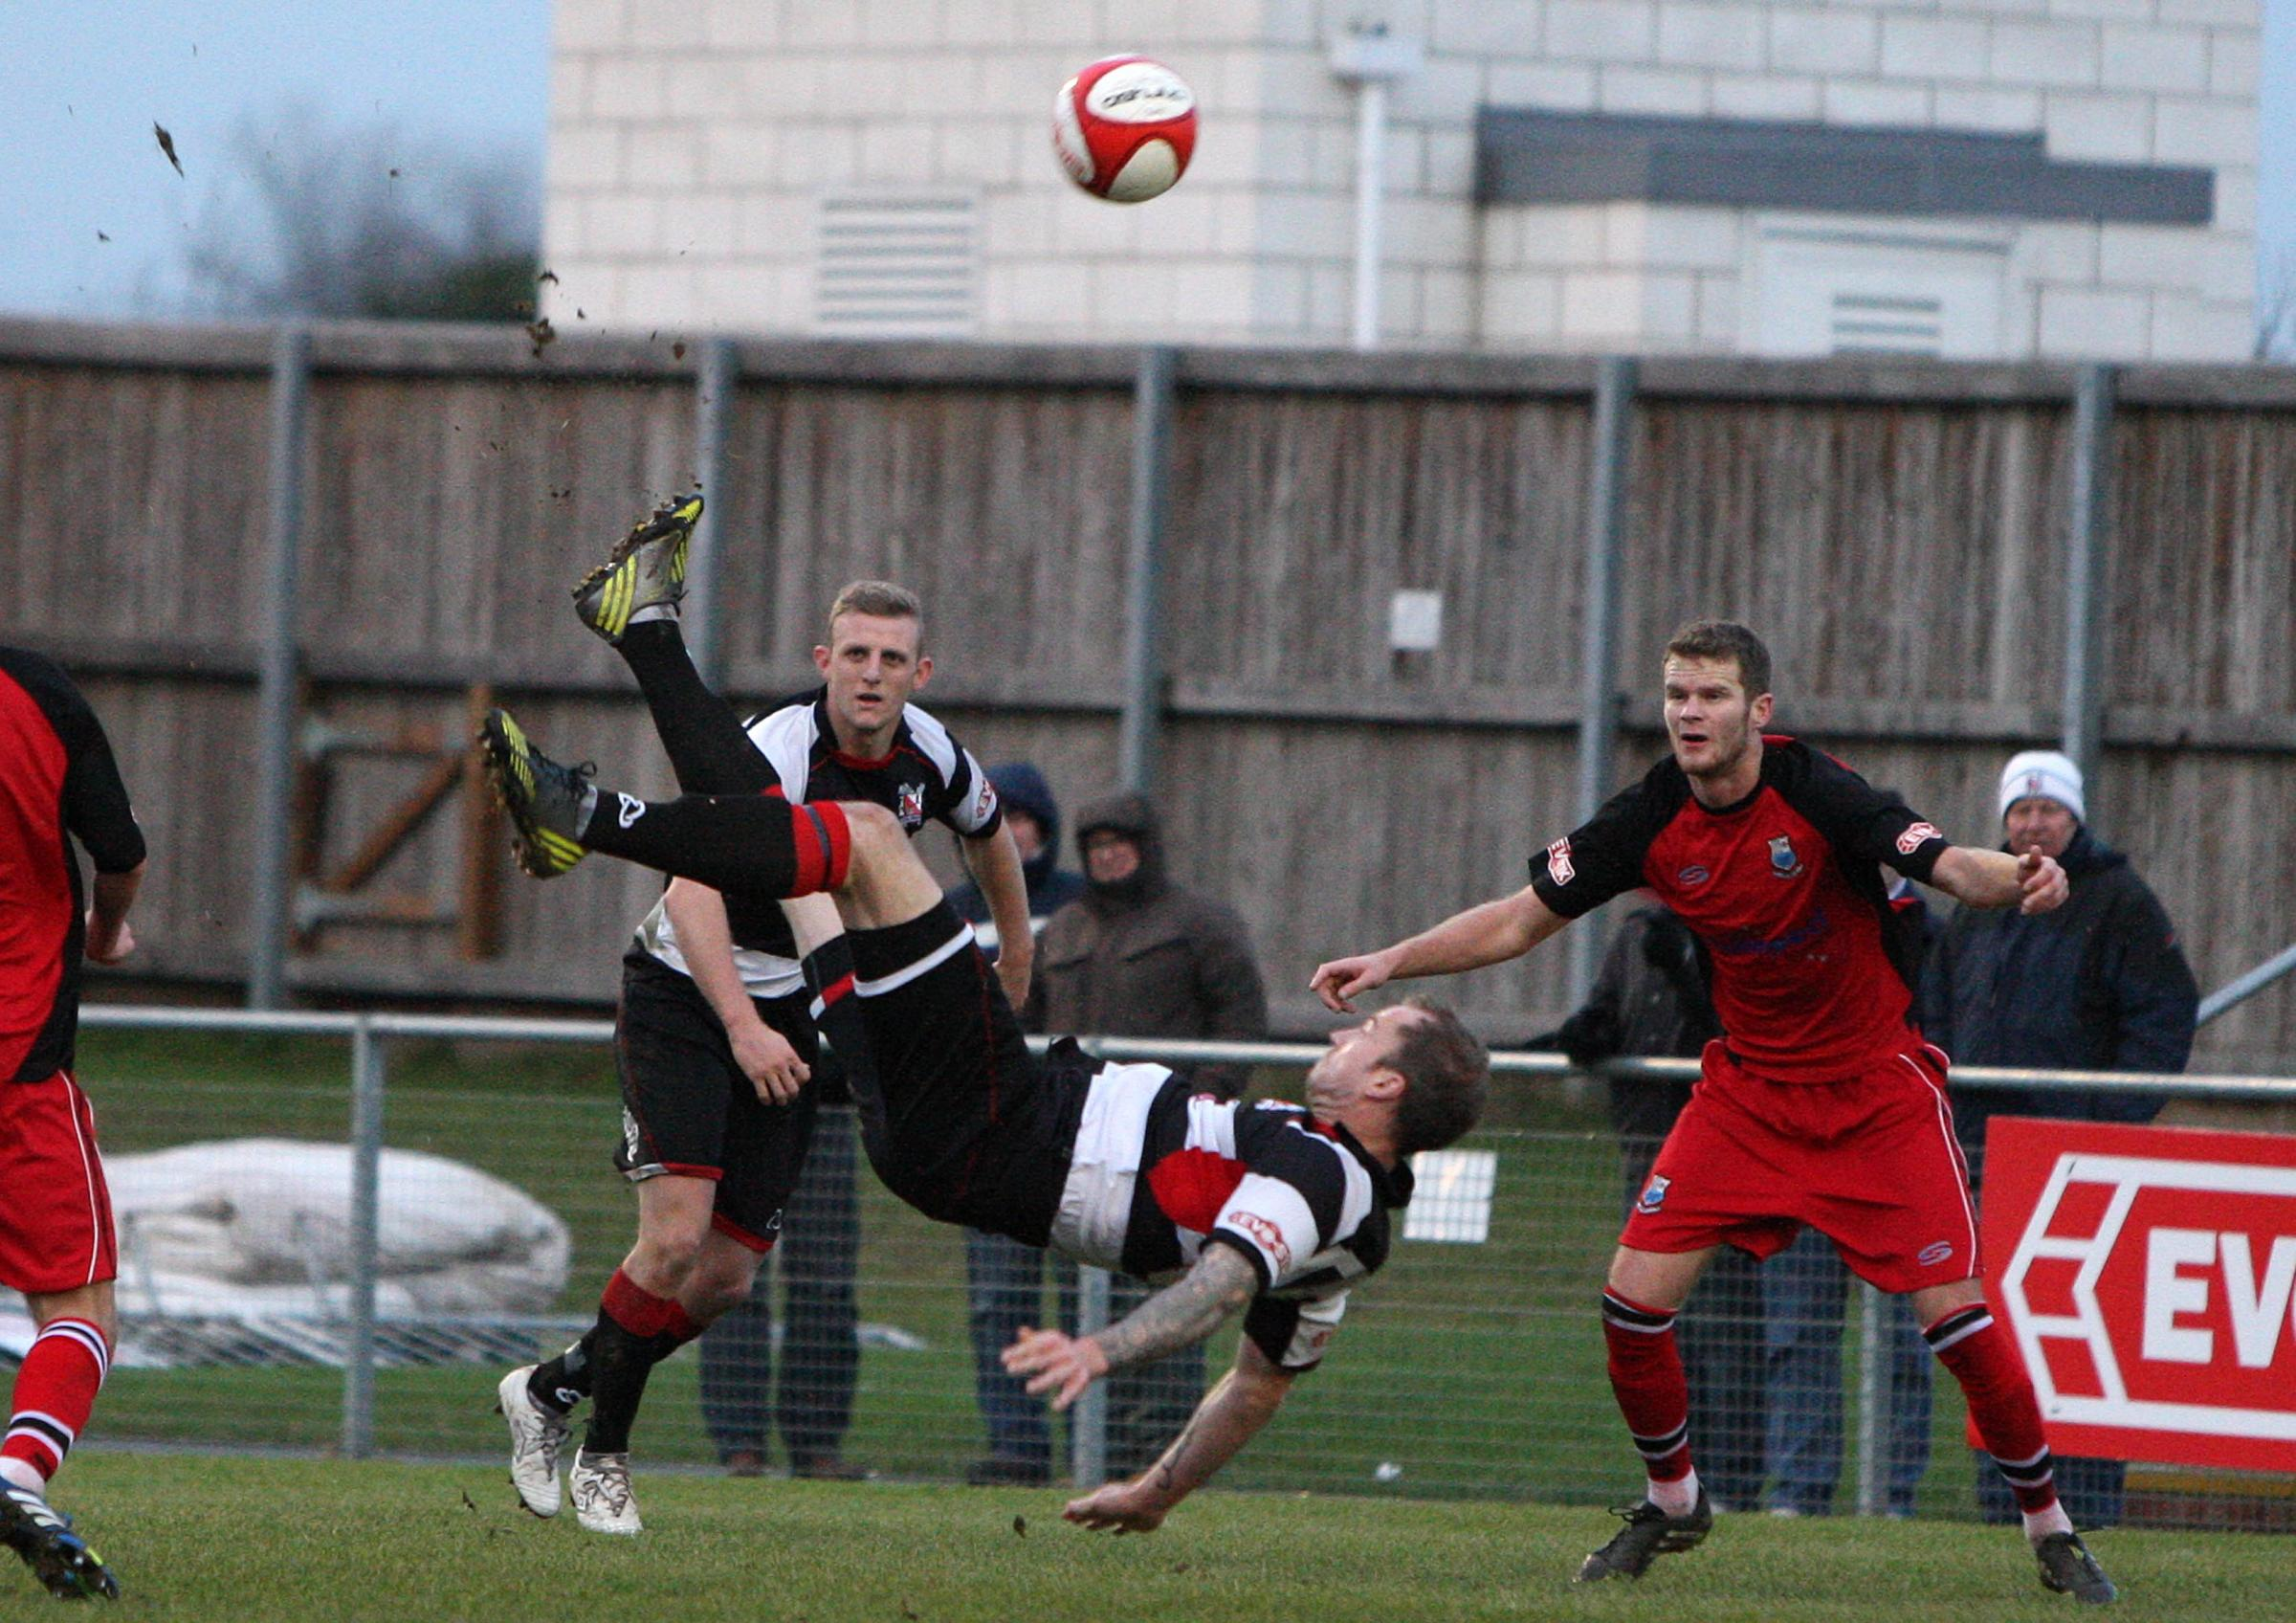 AMBITIOUS EFFORT: Darlington defender Alan White attempts to score with an overhead kick against Bamber Bridge on Saturday